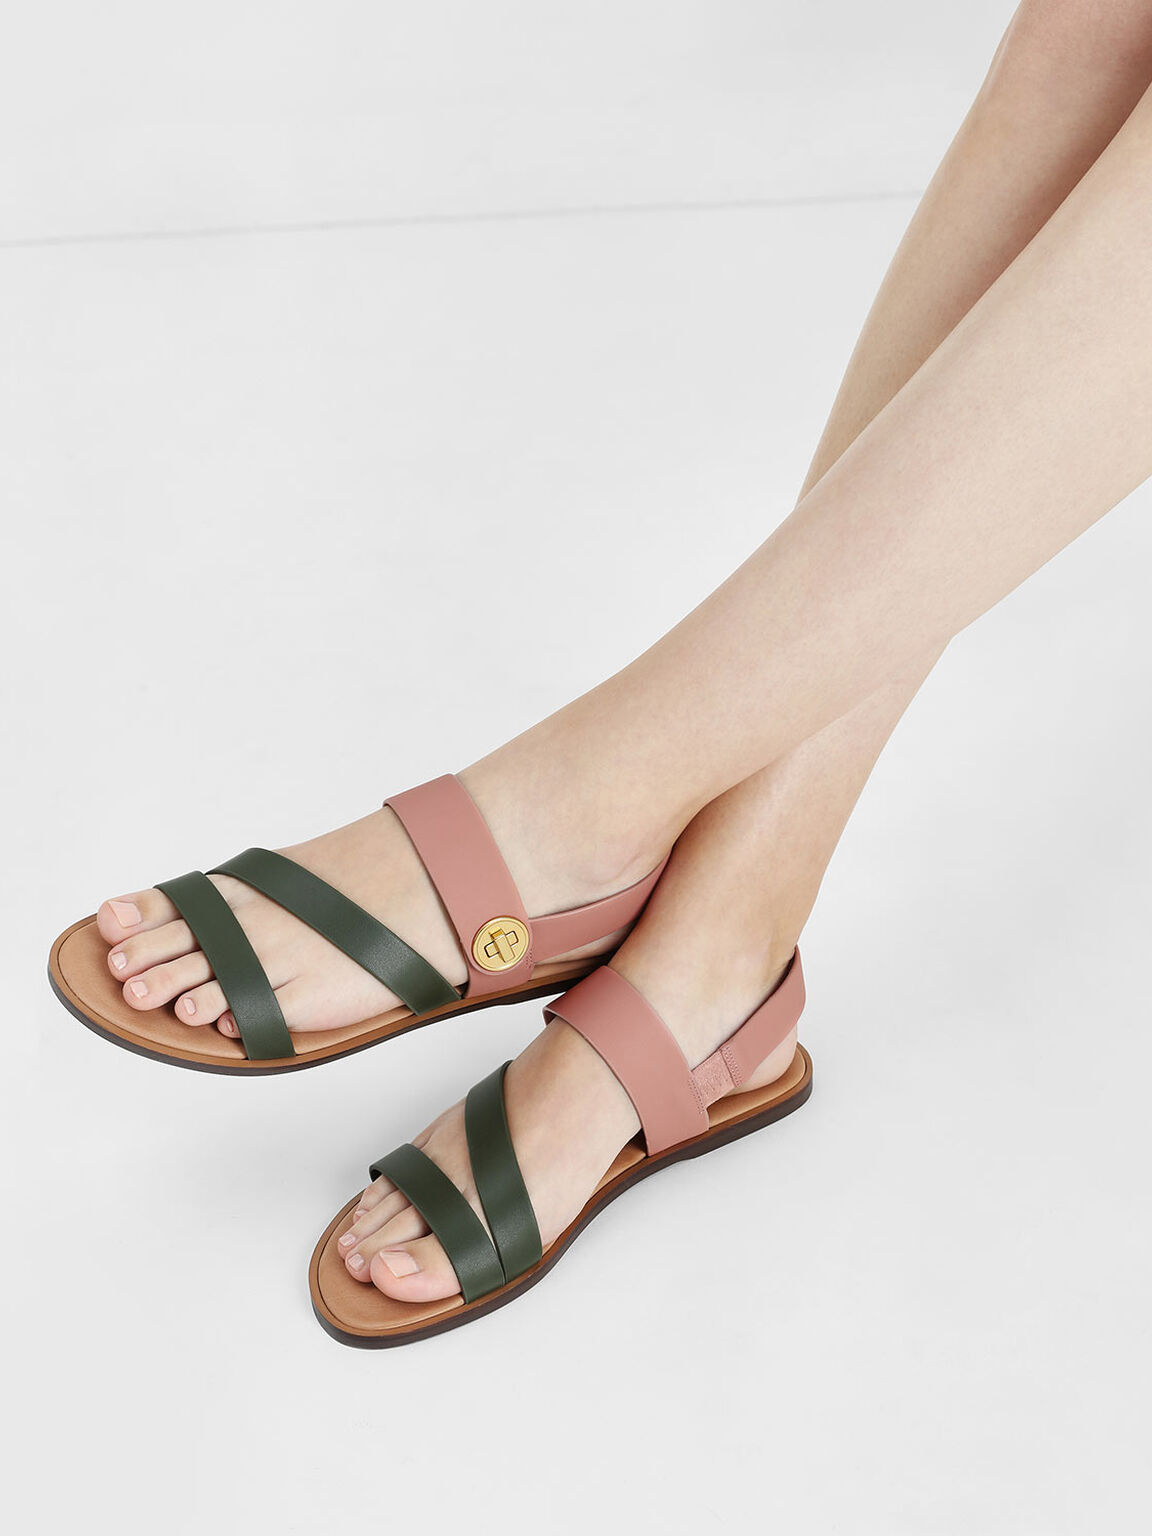 Asymmetrical Strappy Sandals, Olive, hi-res